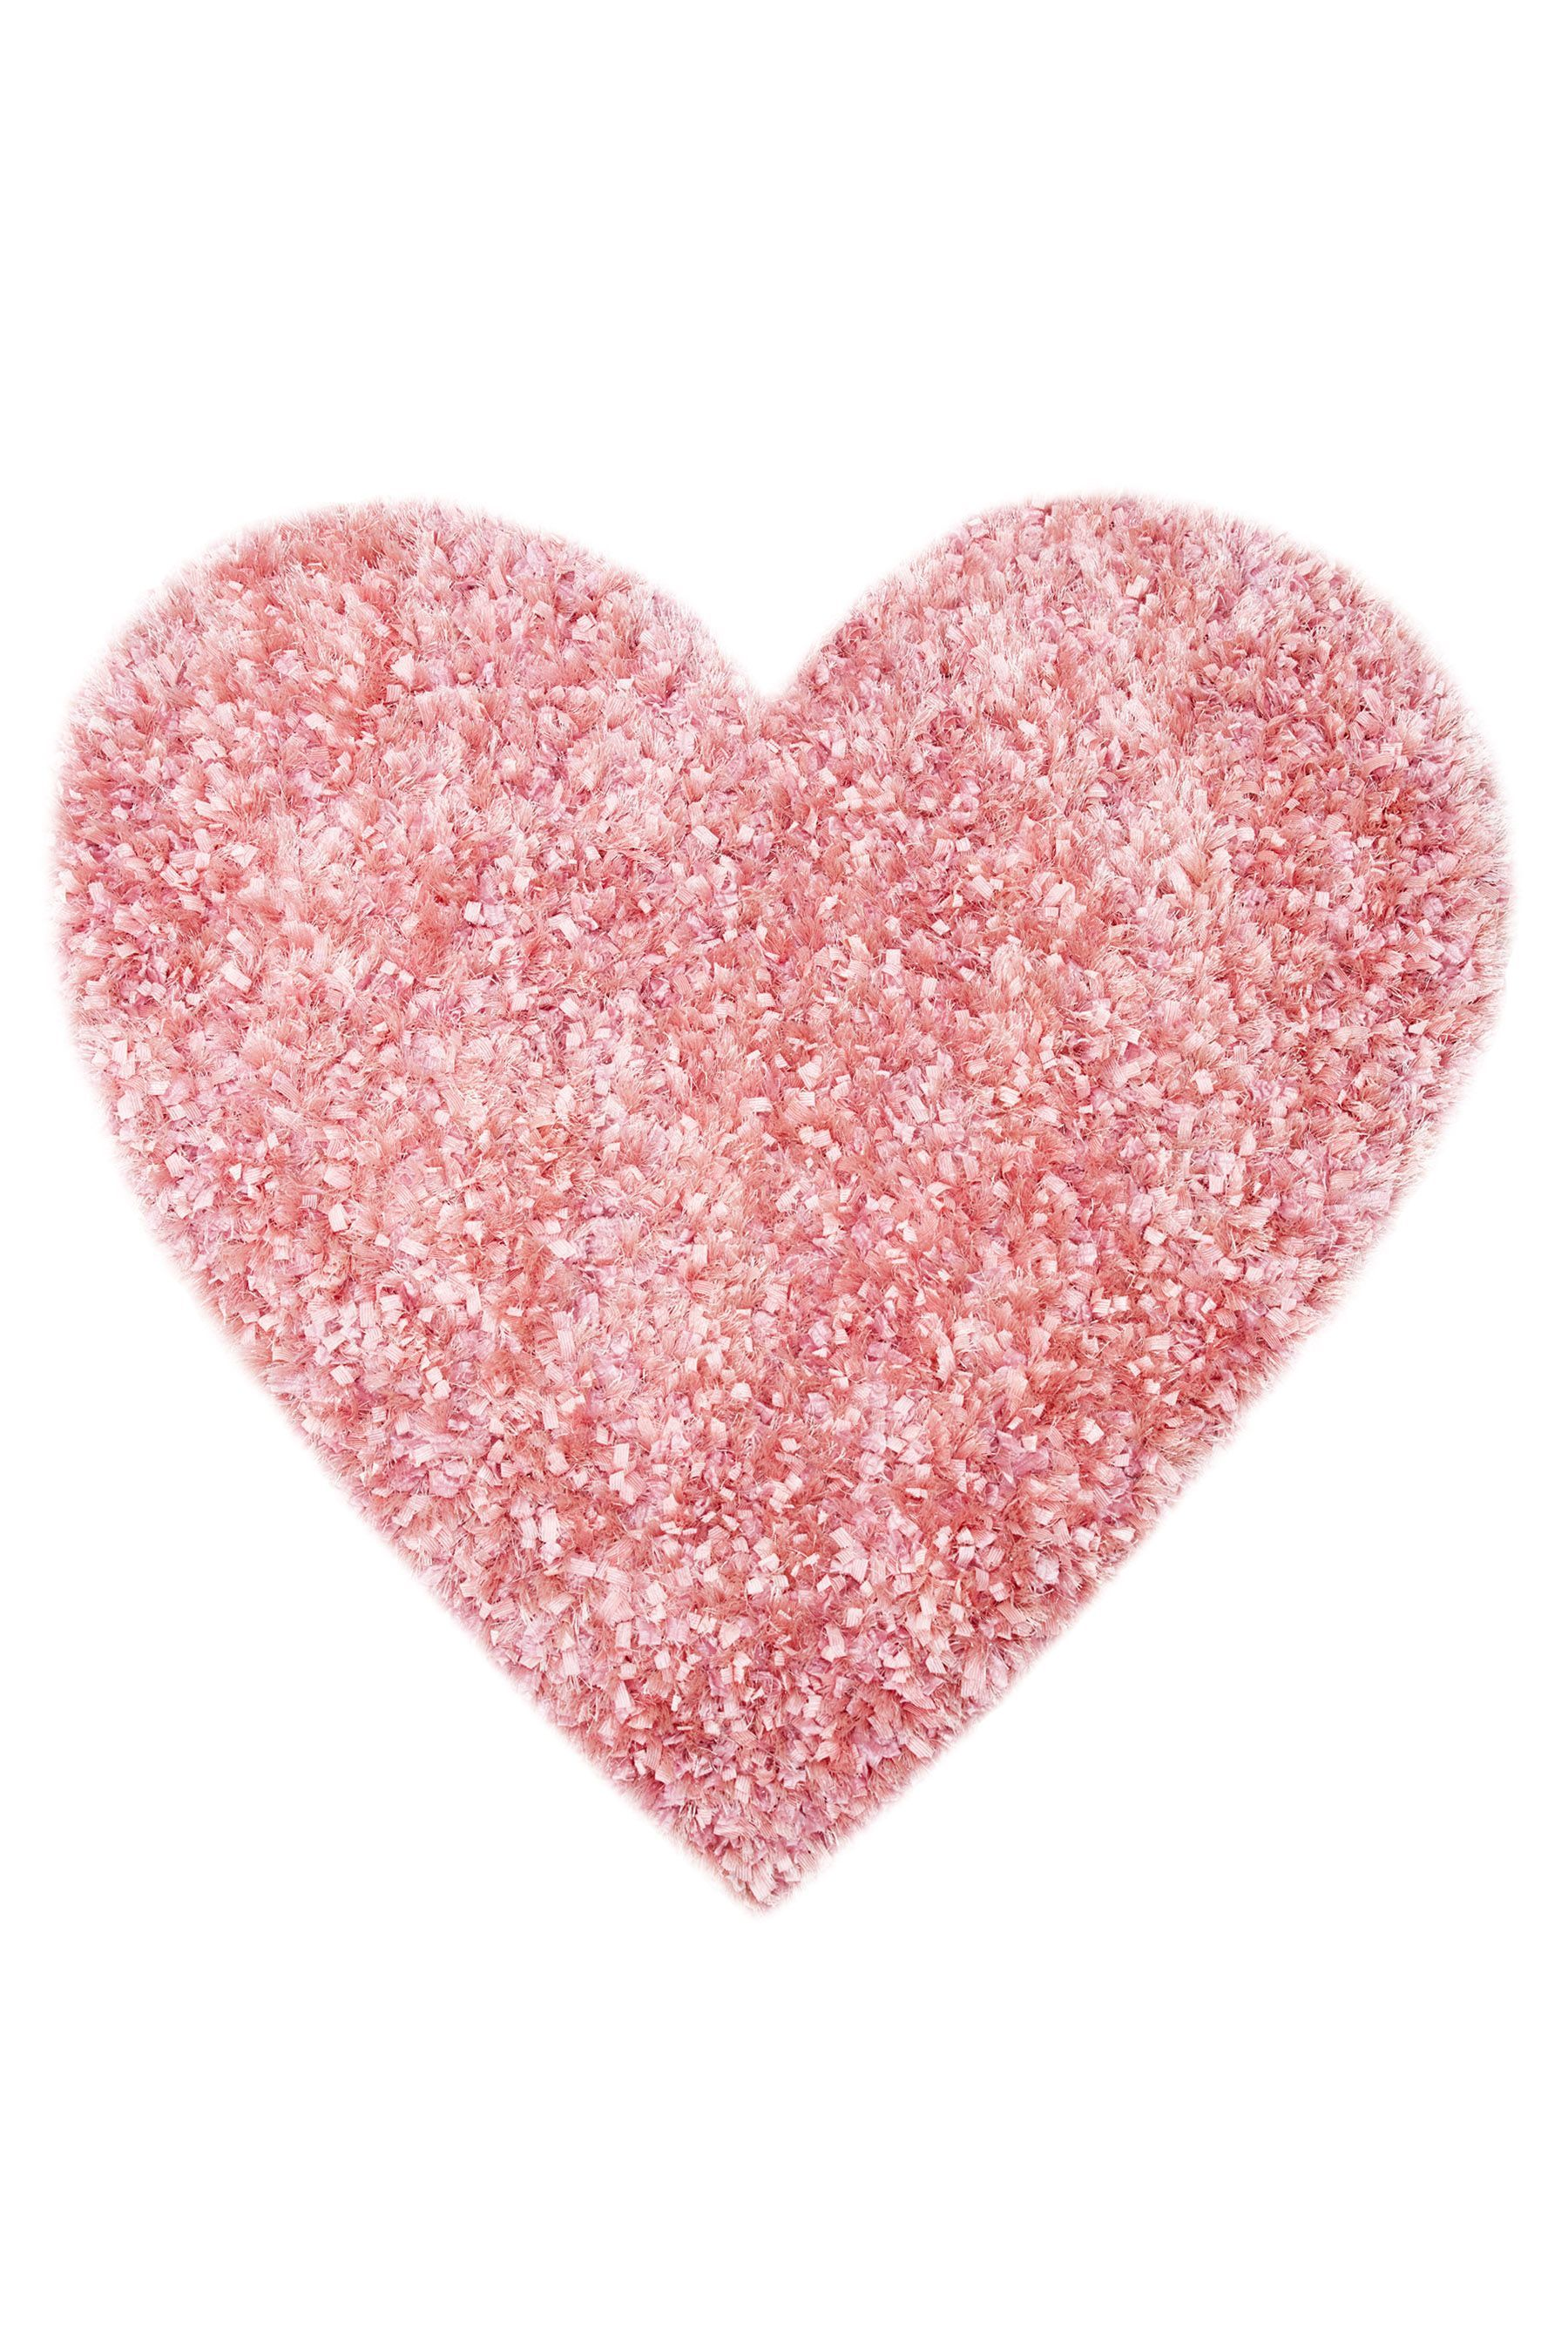 Pink Sparkle Heart Rug From The Next Uk Online